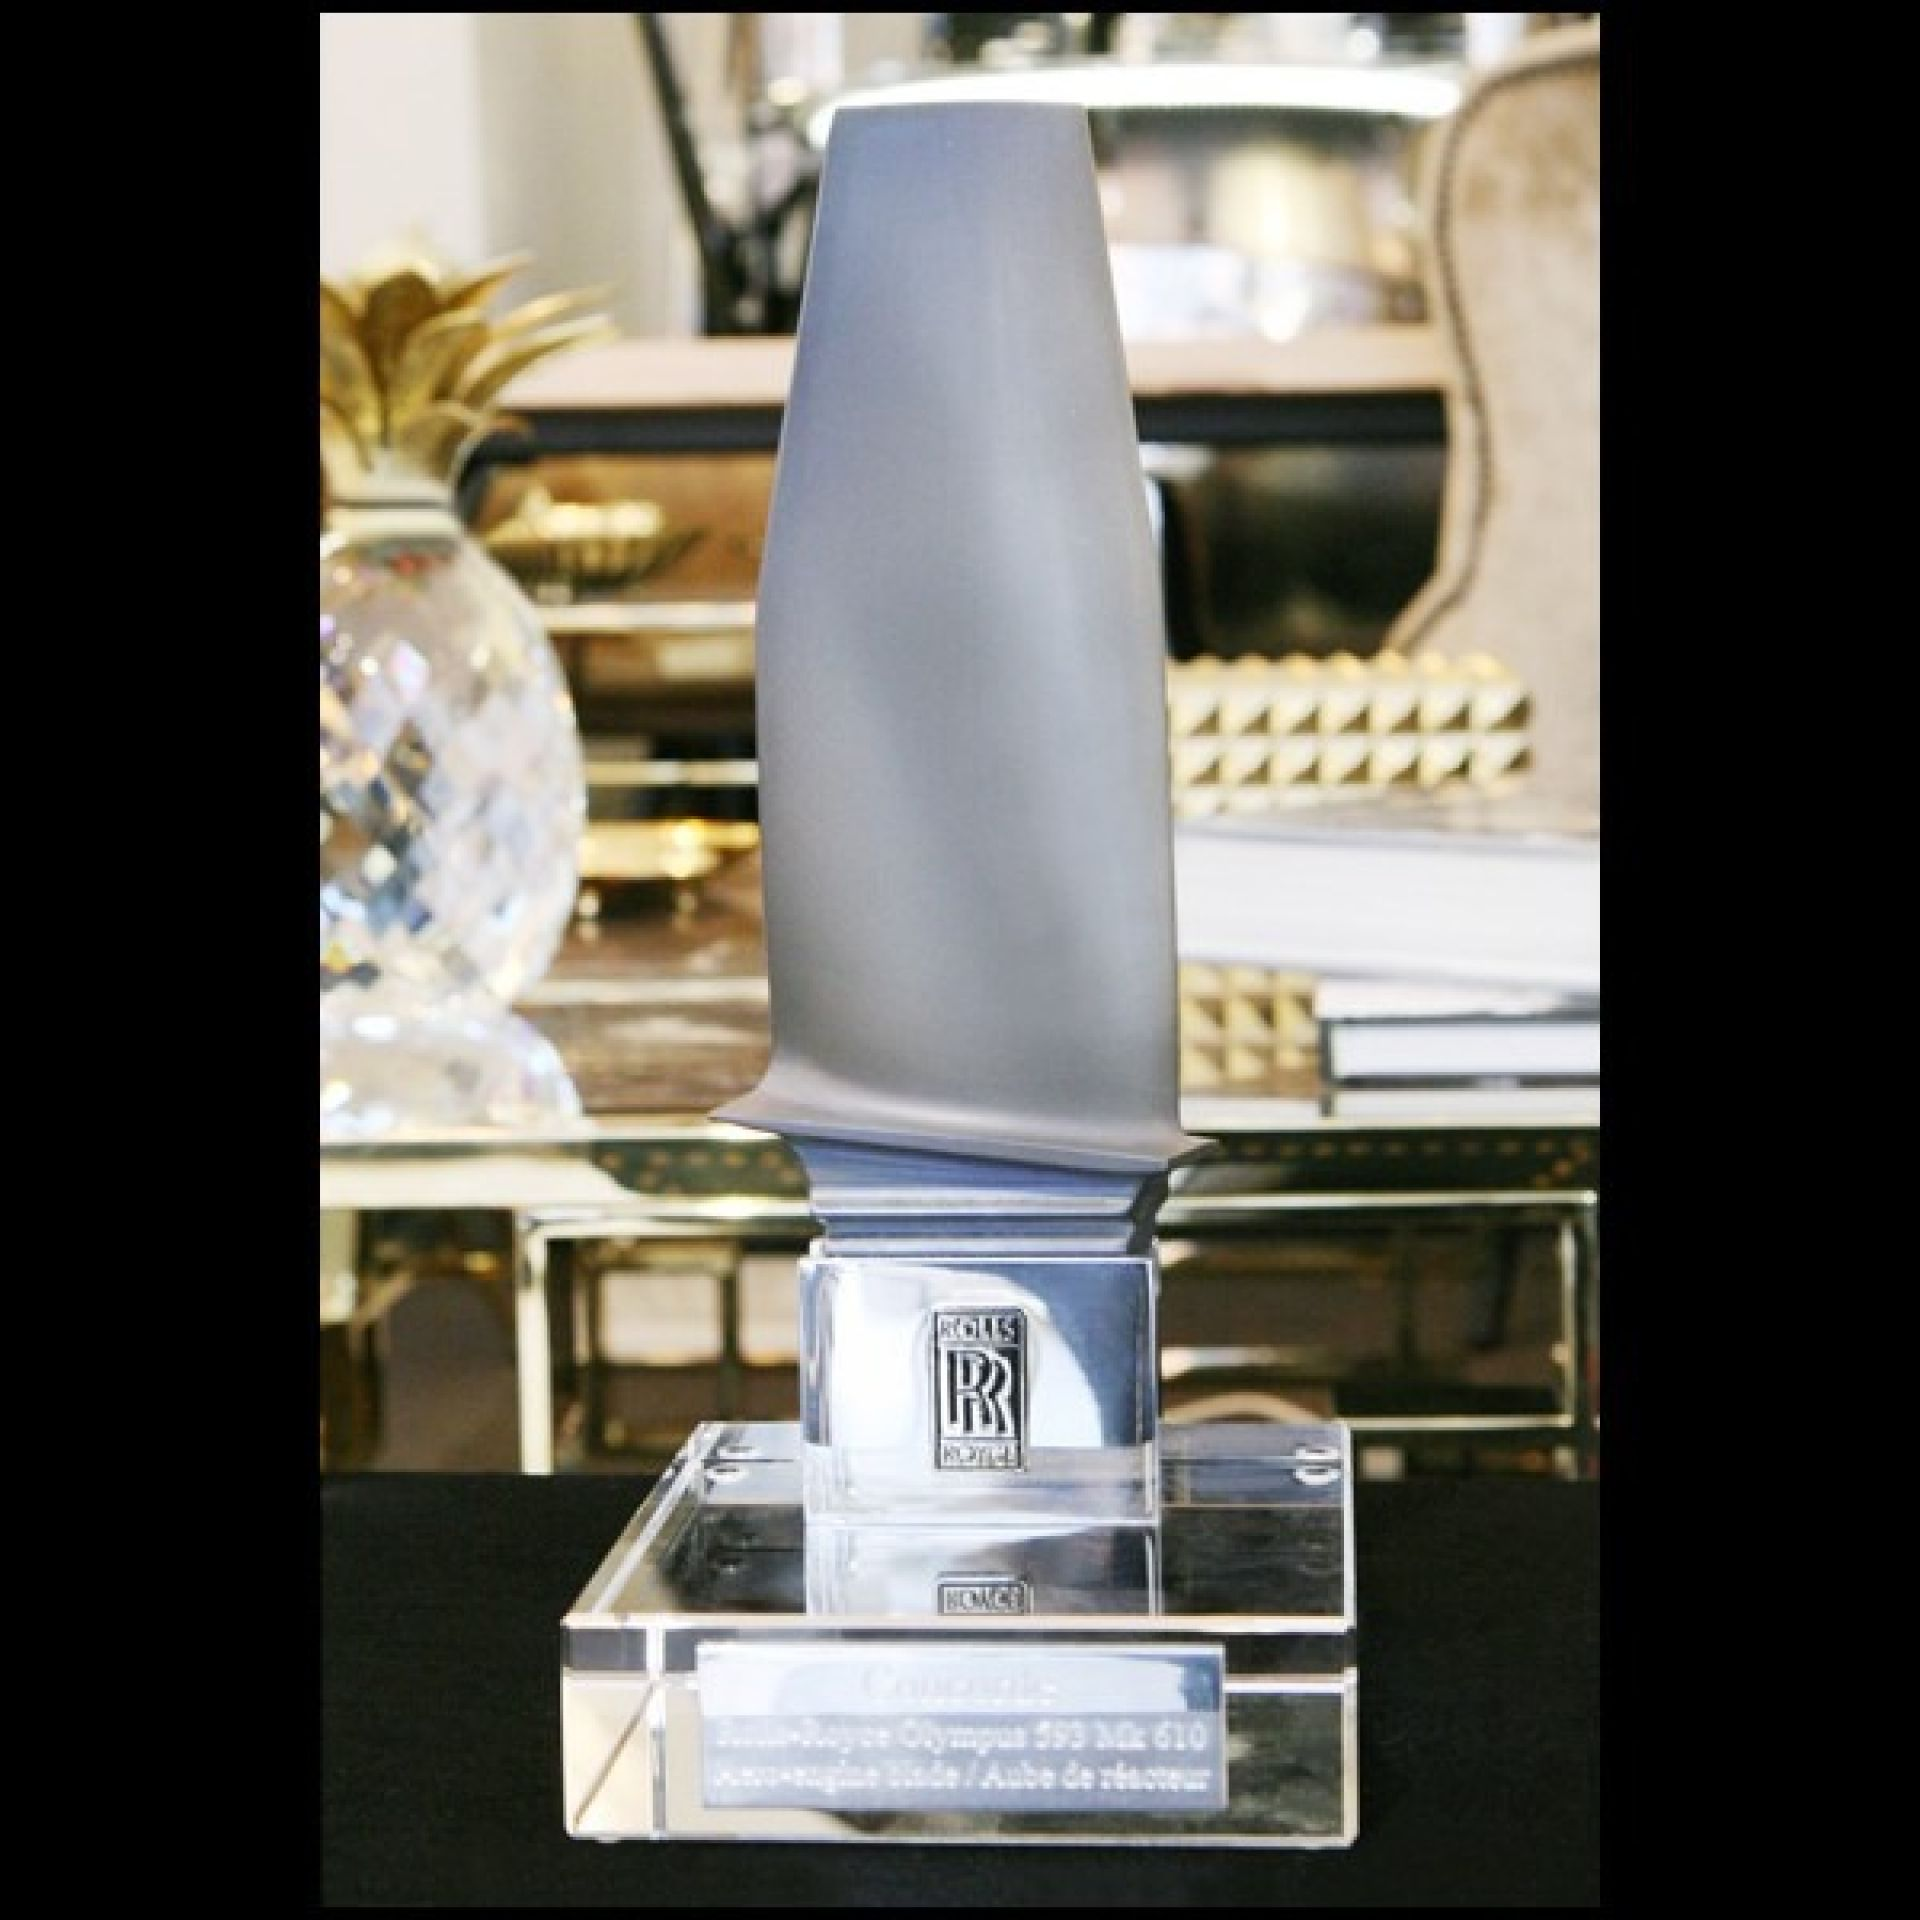 ROLLS-ROYCE SUPERSONIC REACTOR WING SCULPTURE OLYMPUS 593 MK 610 PC-CONCORDE 2